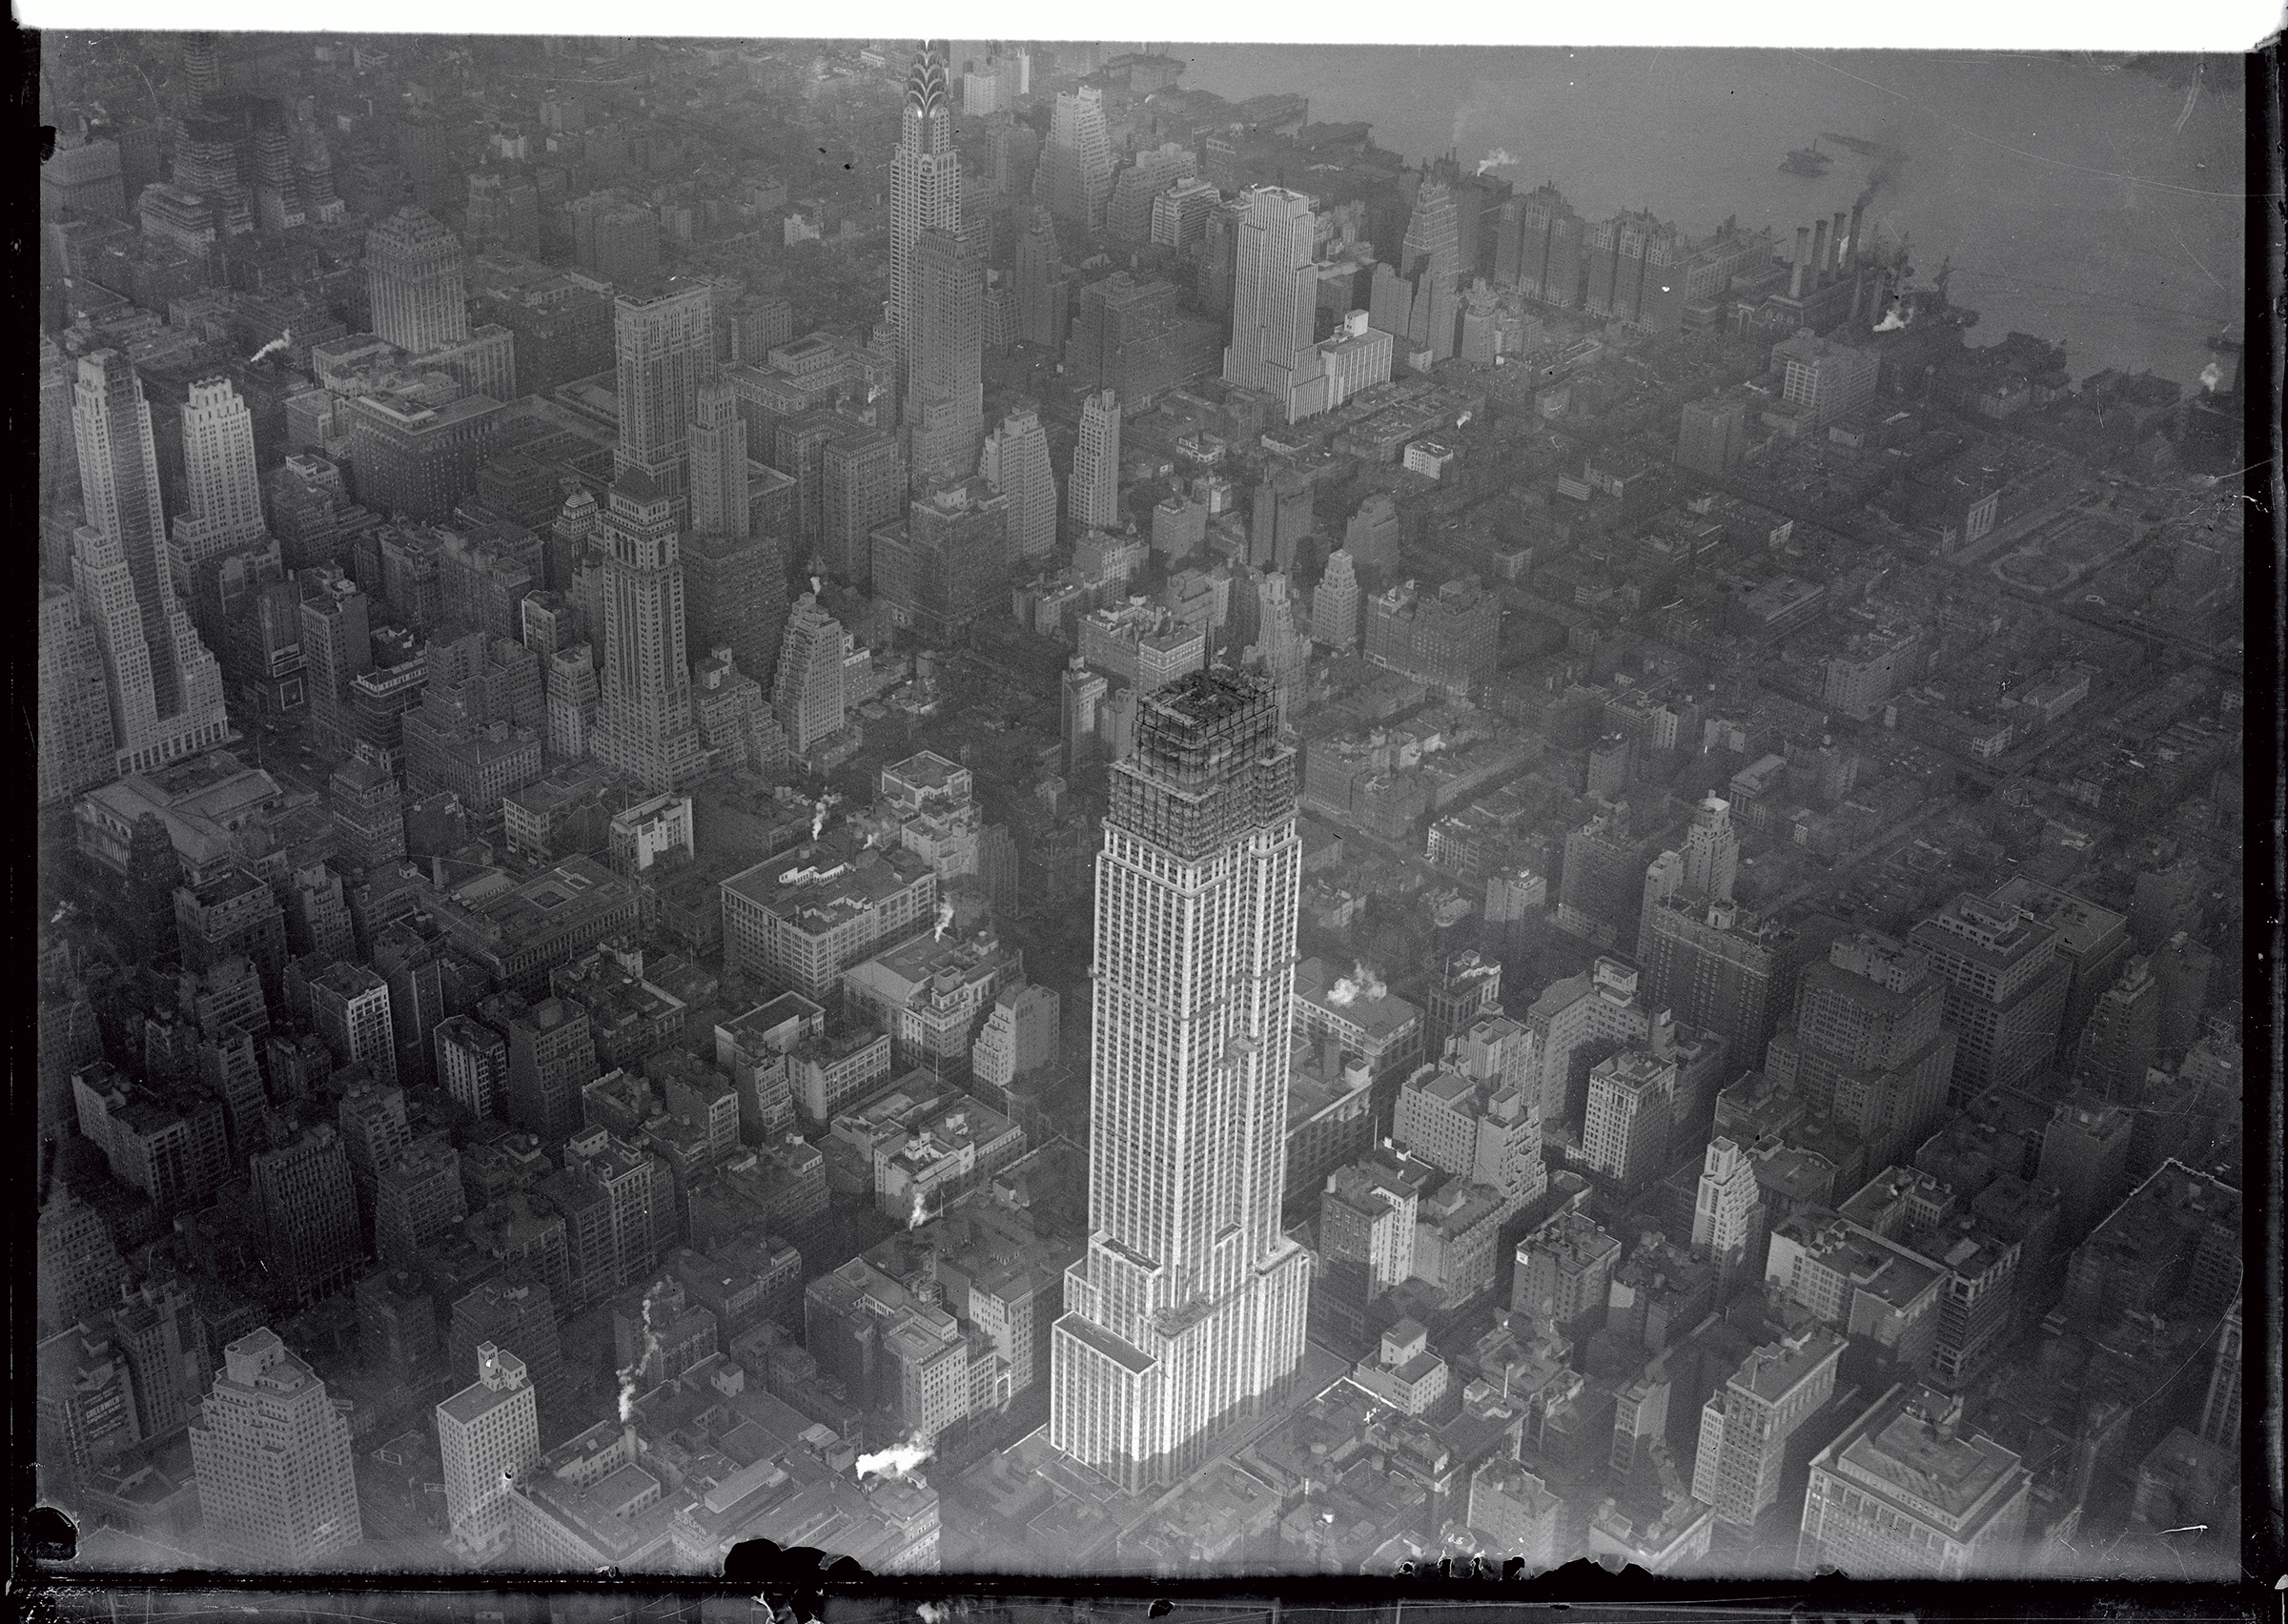 An aerial photograph of The Empire State Building from October 1930. At the time, there were 88 stories finished.